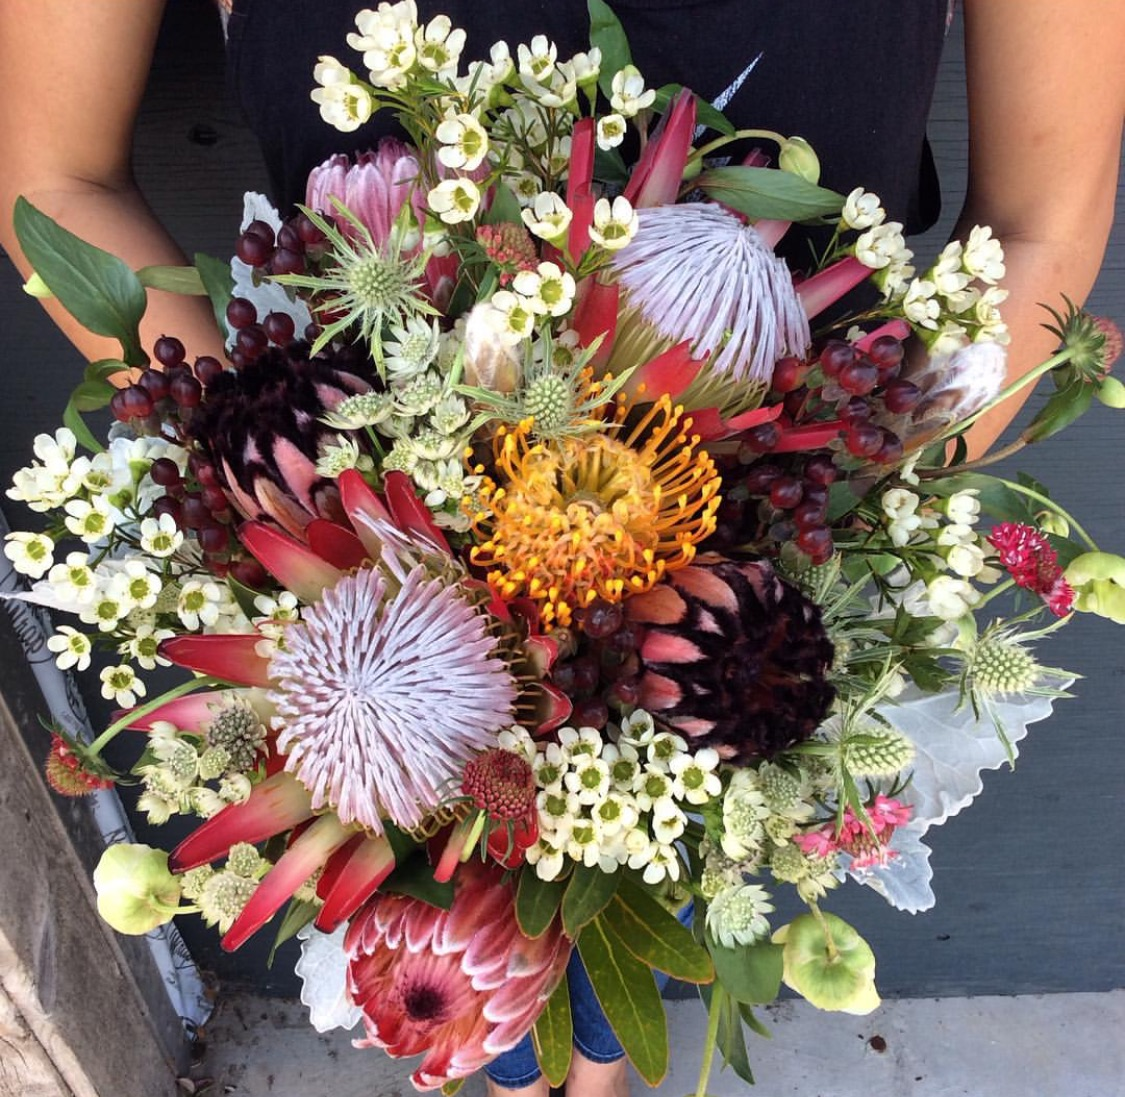 26. Protea Hand Wrapped Bouquet